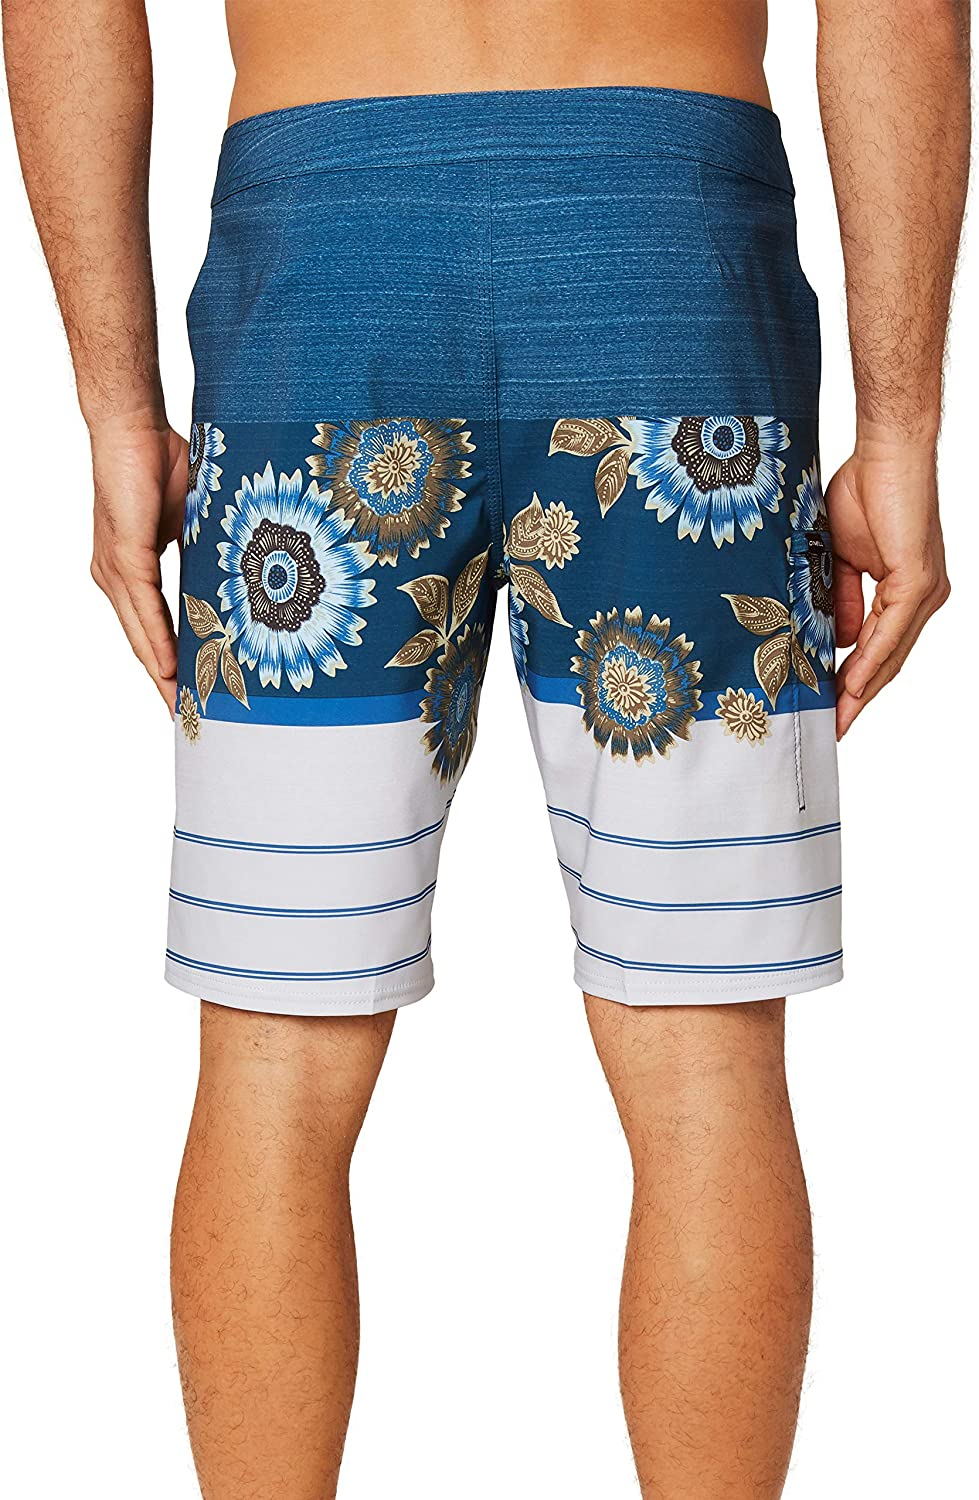 Mid-Length Swimsuit 20 Inch Outseam ONEILL Mens Water Resistant Hyperfreak Stretch Swim Boardshort